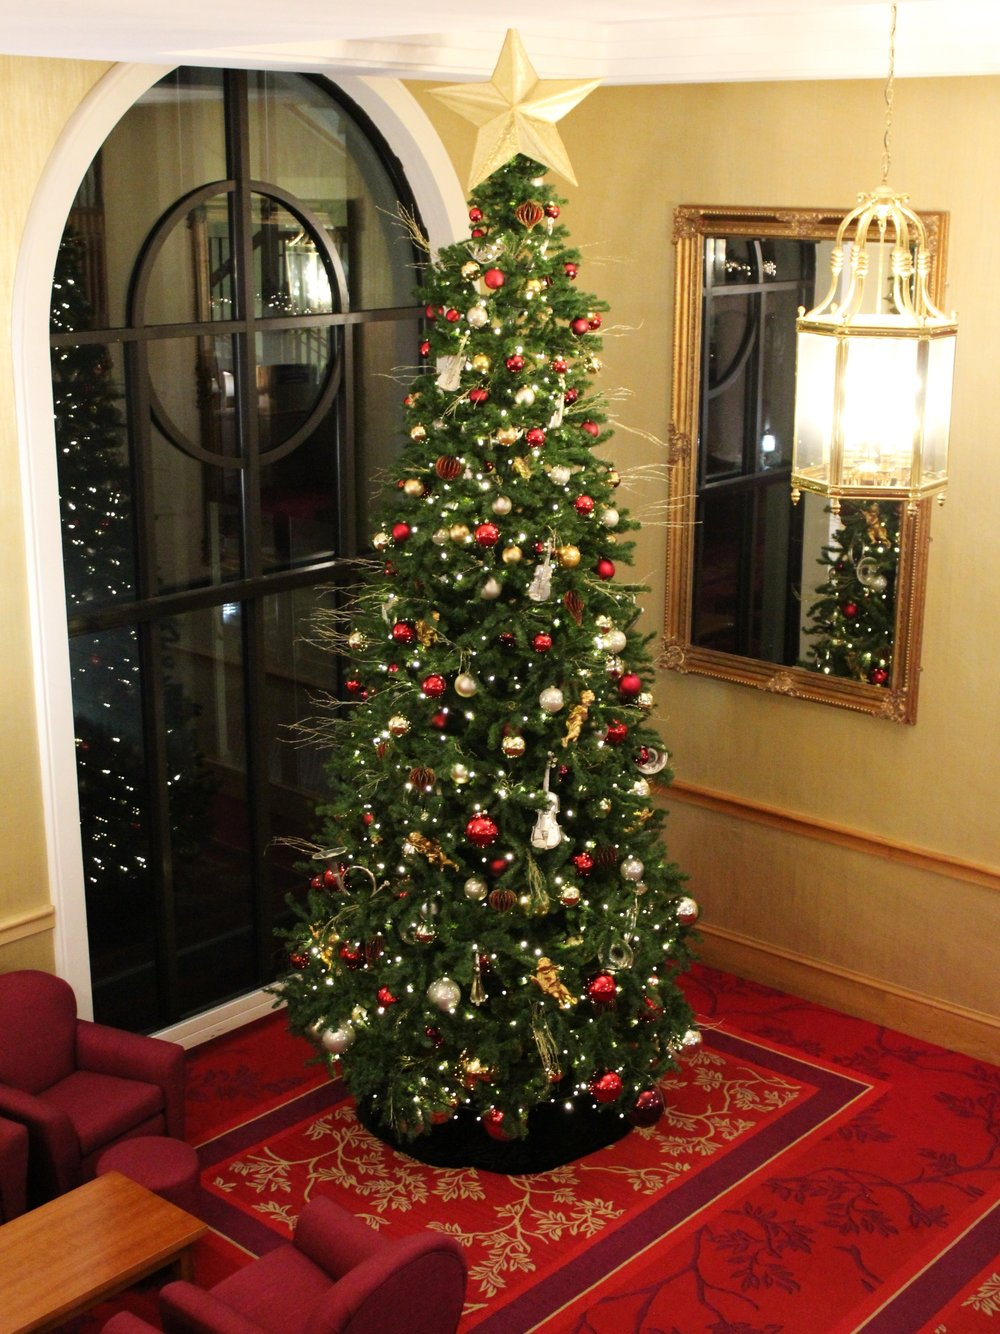 The impressive Christmas tree in the lobby